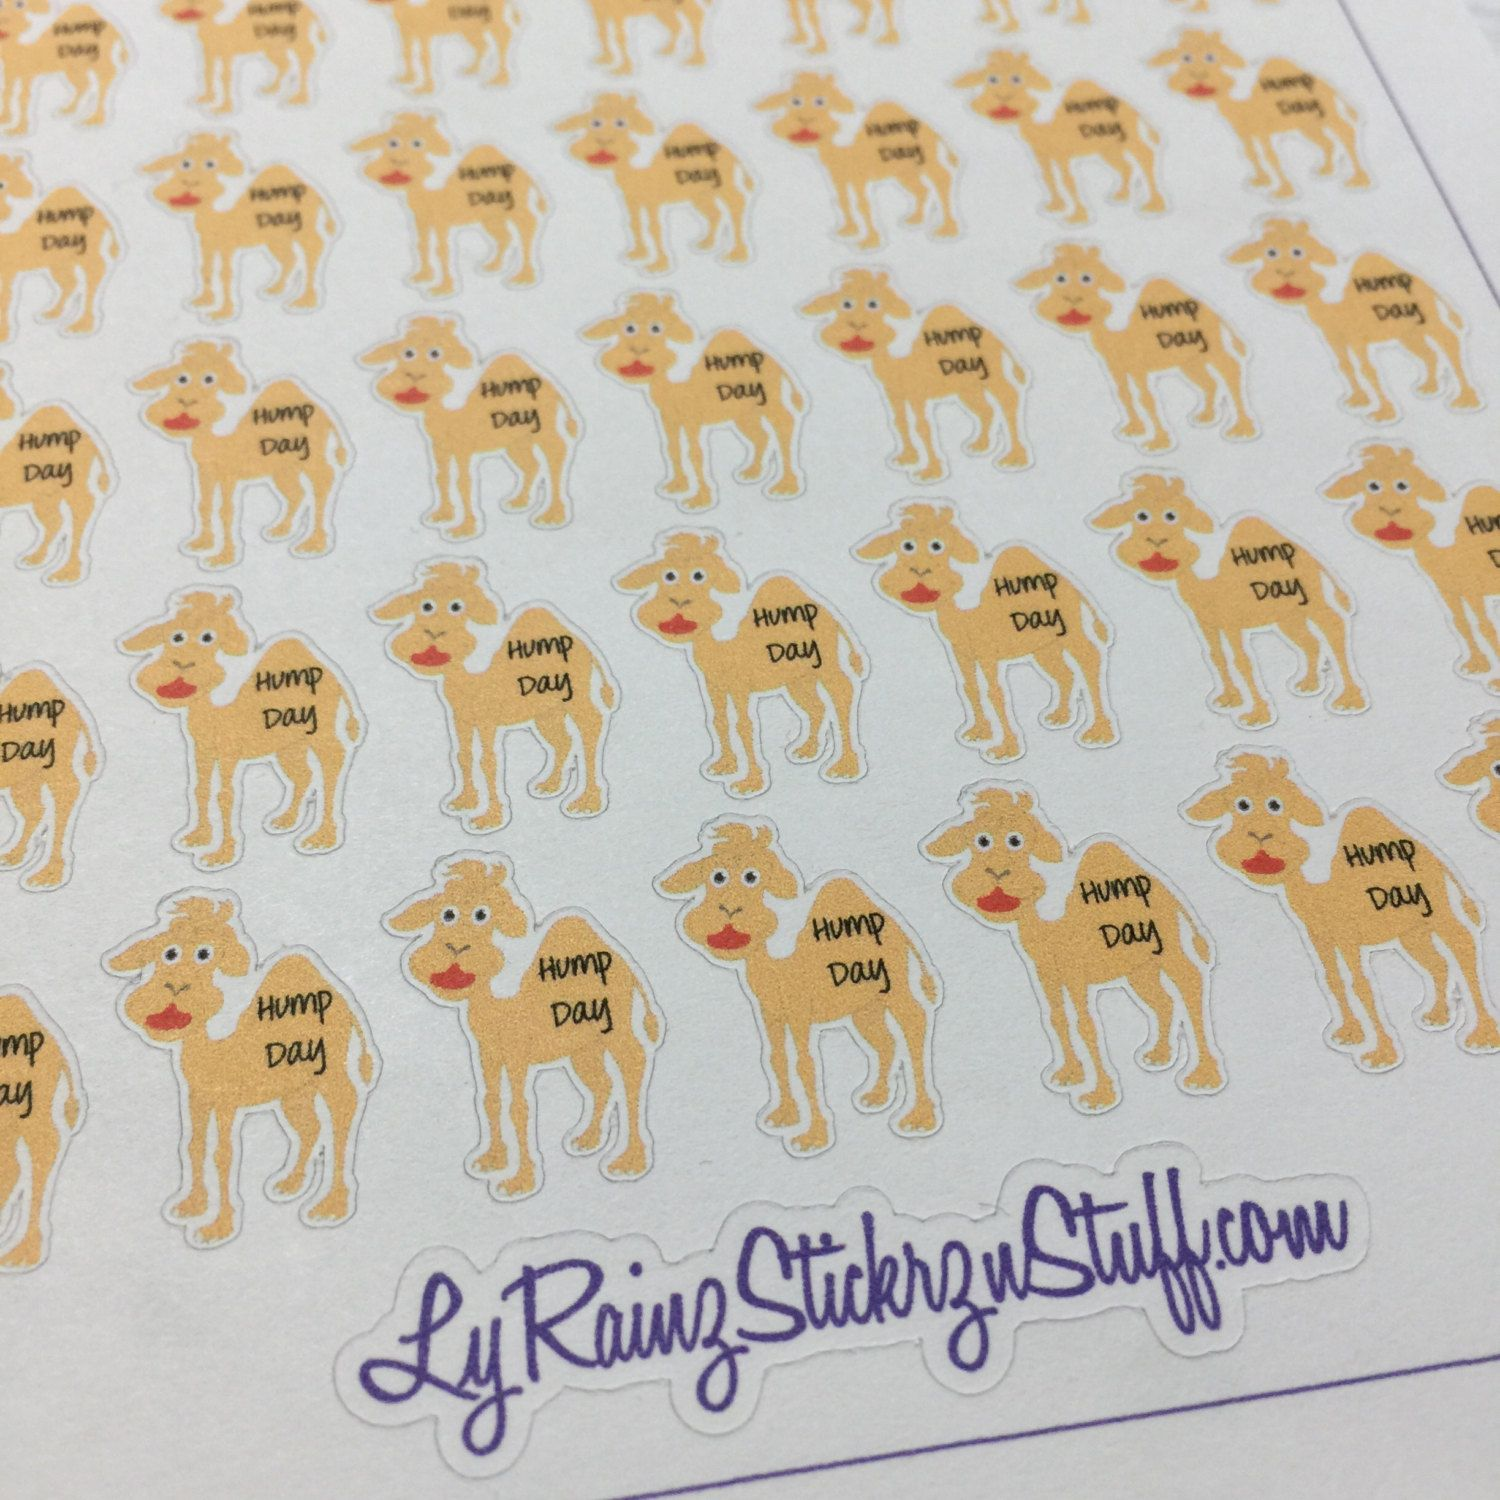 49 Hump Day Camel Stickers for Passion Planner, Happy Planner, ErinCondren, Filofax, Bujo, Kikkik...etc by LyRainzStickrzNStuff on Etsy